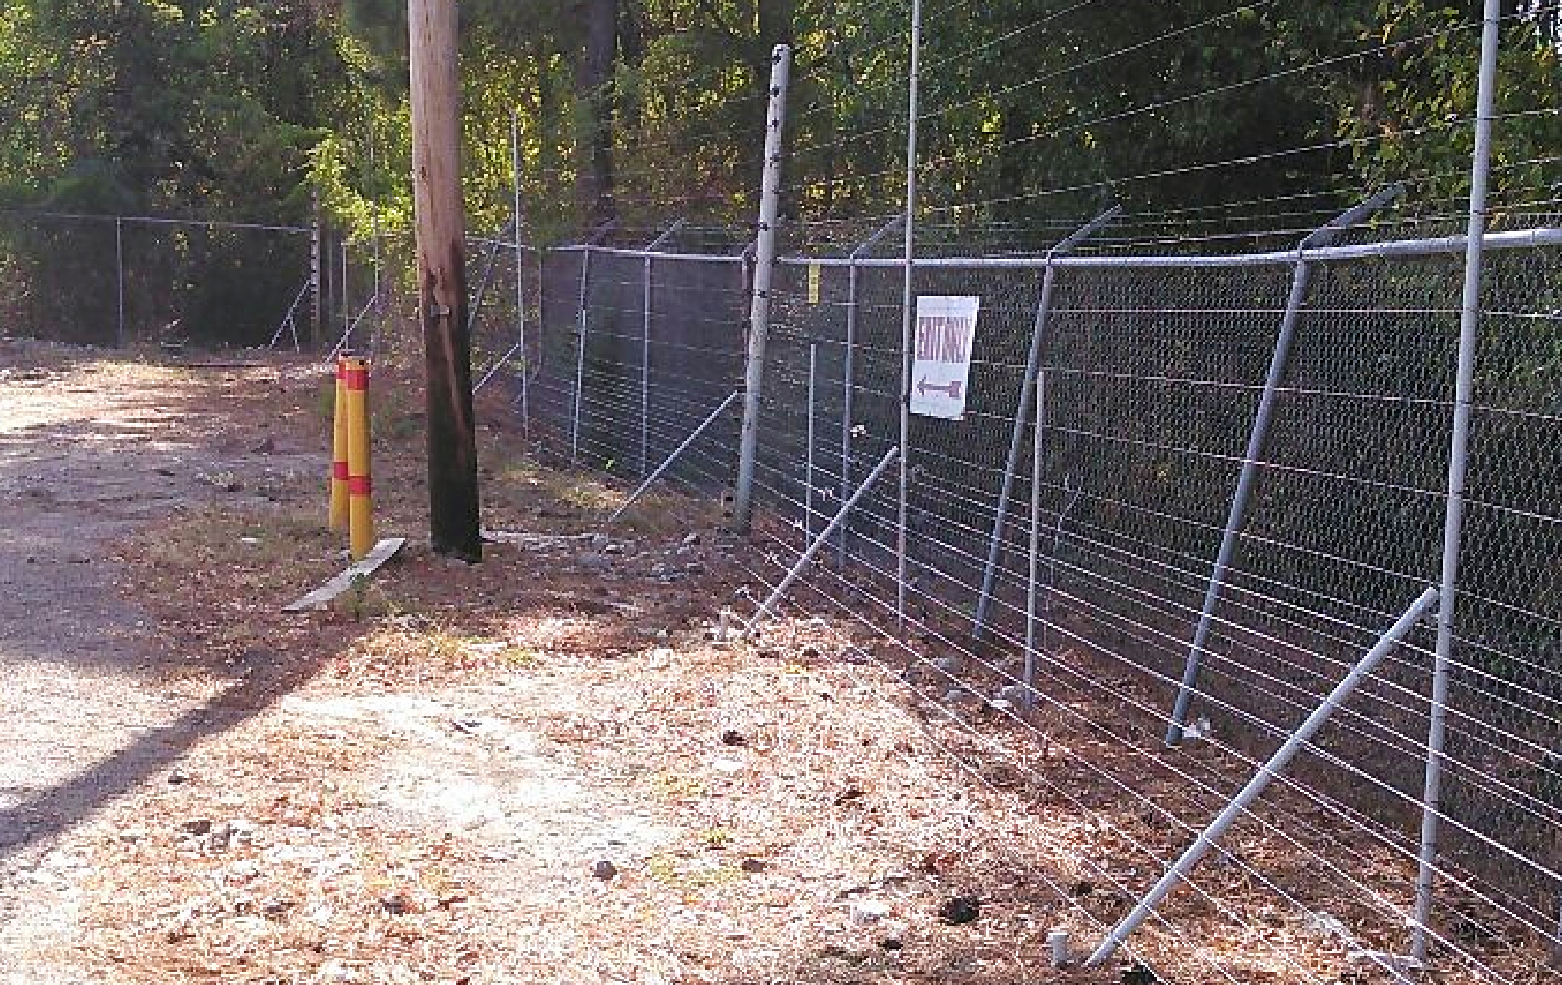 45-Degree Lay-Down Fence Option